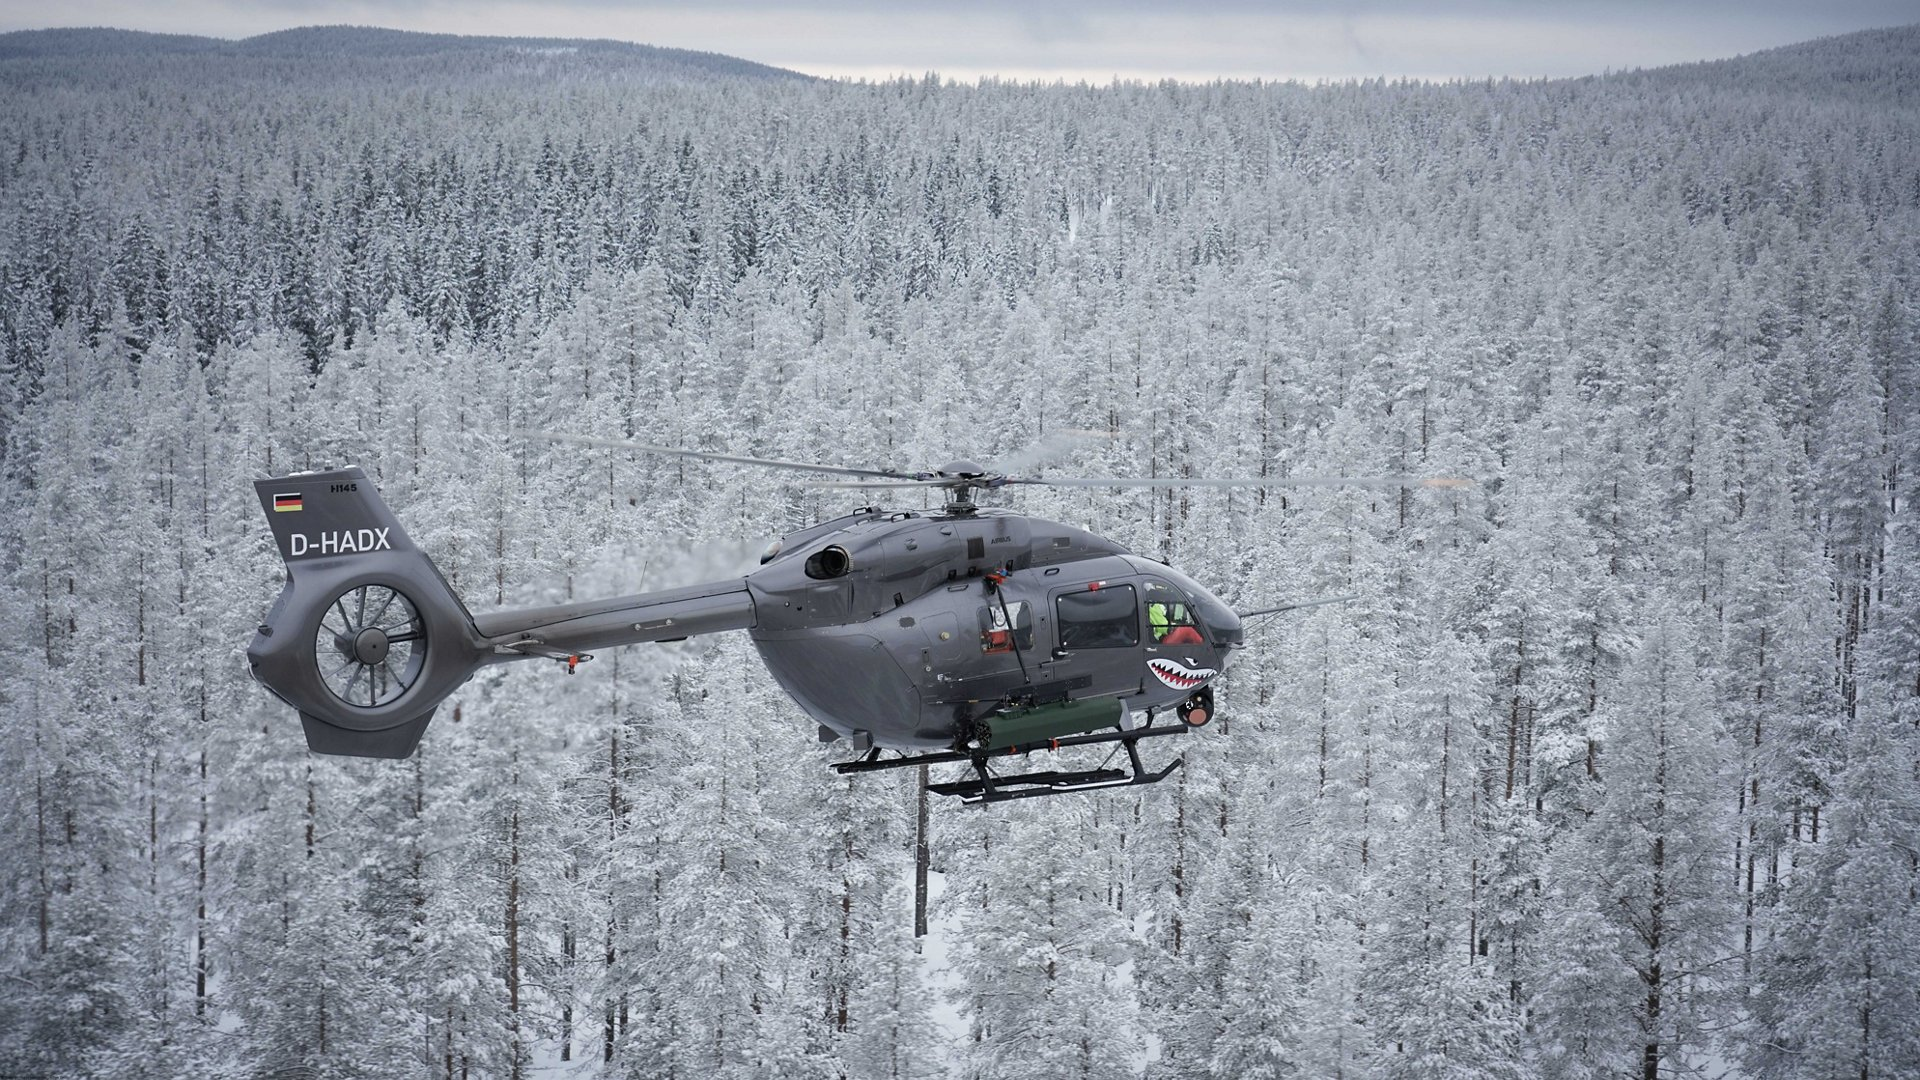 The successful capability enhancement for the H145M continues. In the first weeks of December 2017, Airbus Helicopters demonstrated the ability to fire laser guided rockets (FZ275 LGR from Thales) with its new H145M platform at the Älvdalen test range of the Swedish Defence Materiel Administration Flight test Centre.